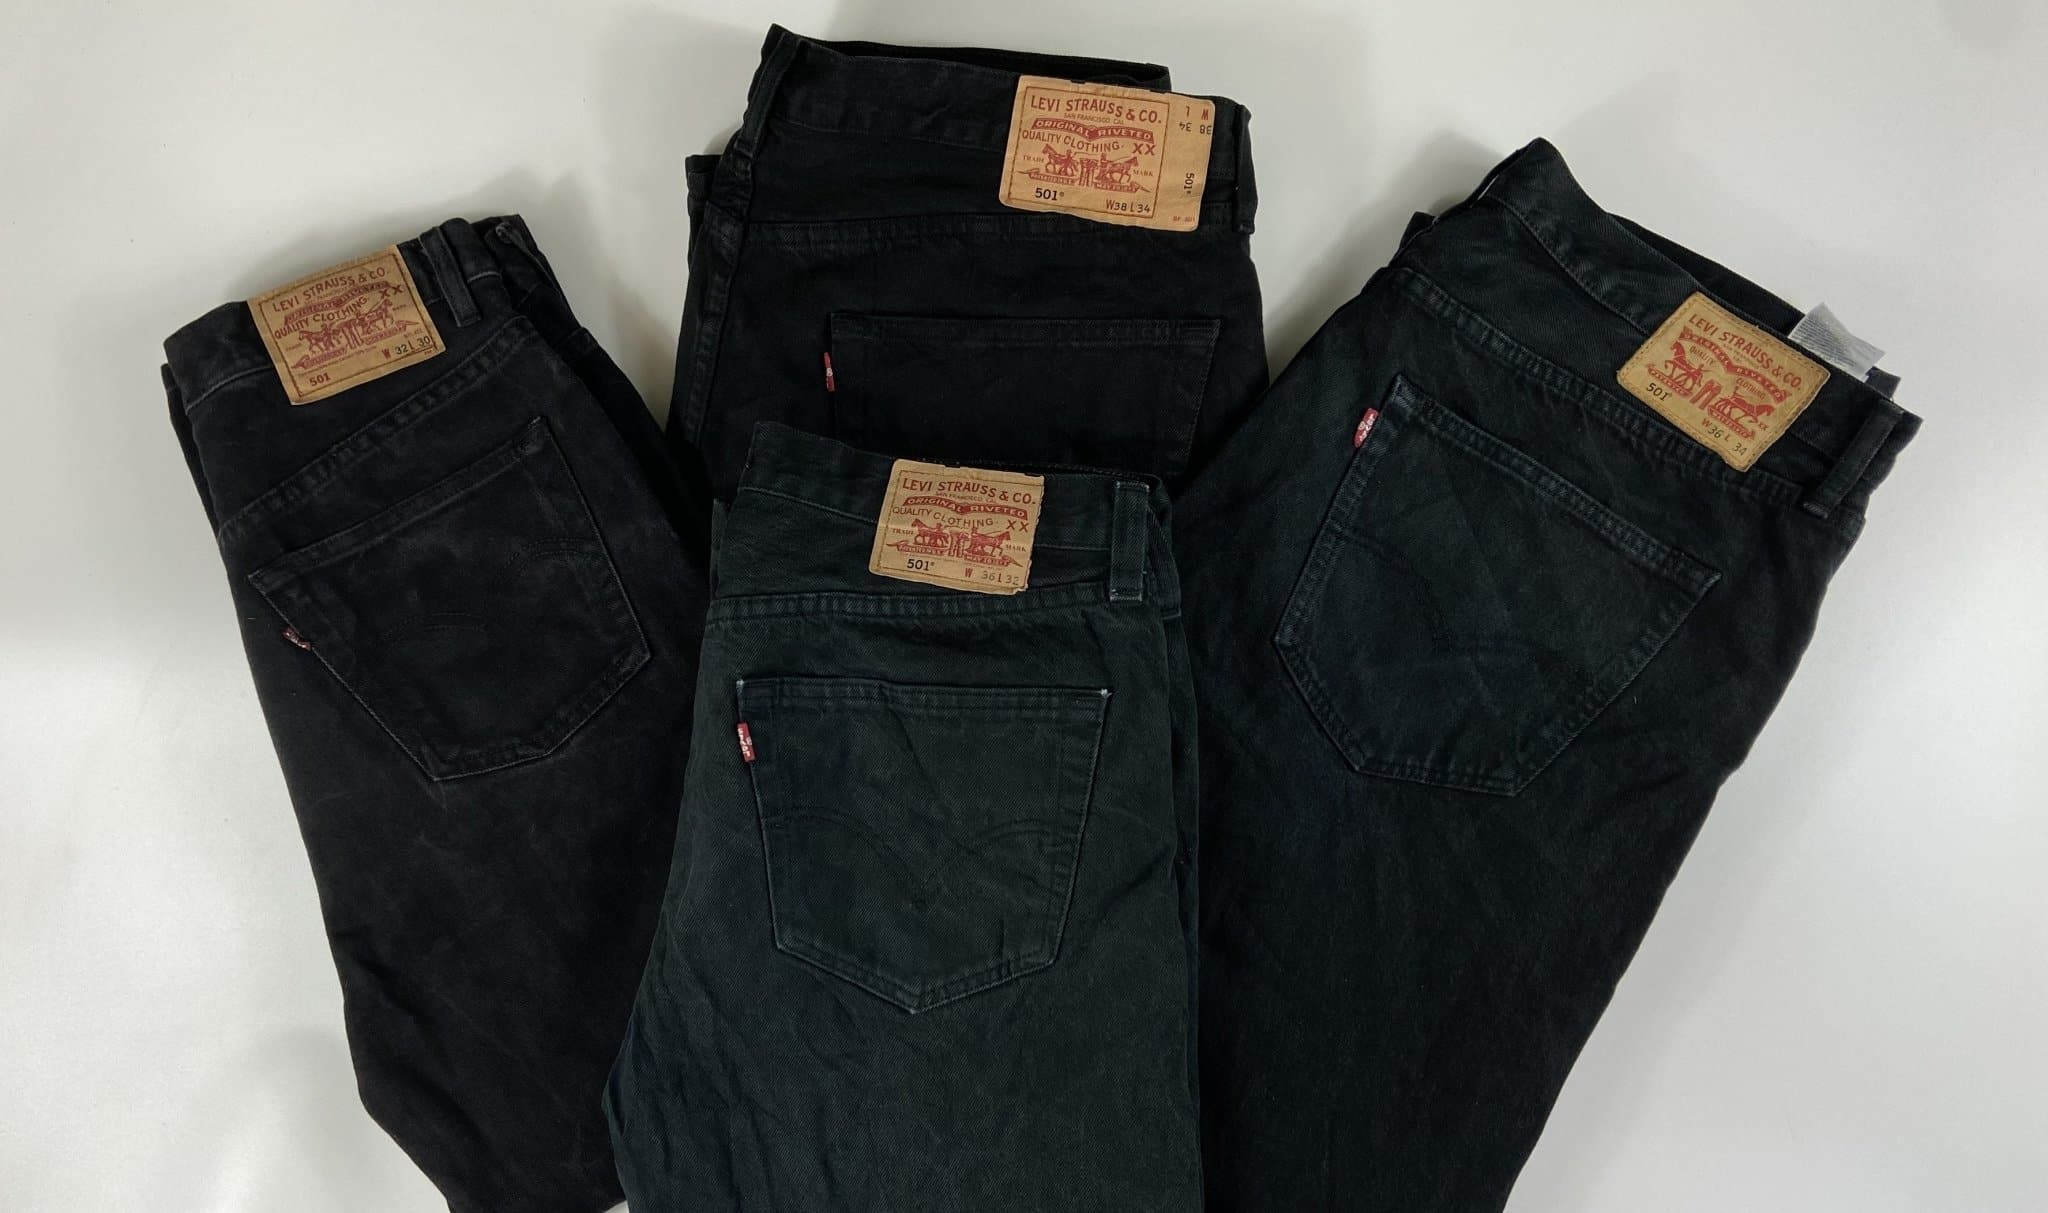 Vintage Levi's Classic 501 Jeans Dark Black/Grey W33 L30 (K5) - Discounted Deals UK